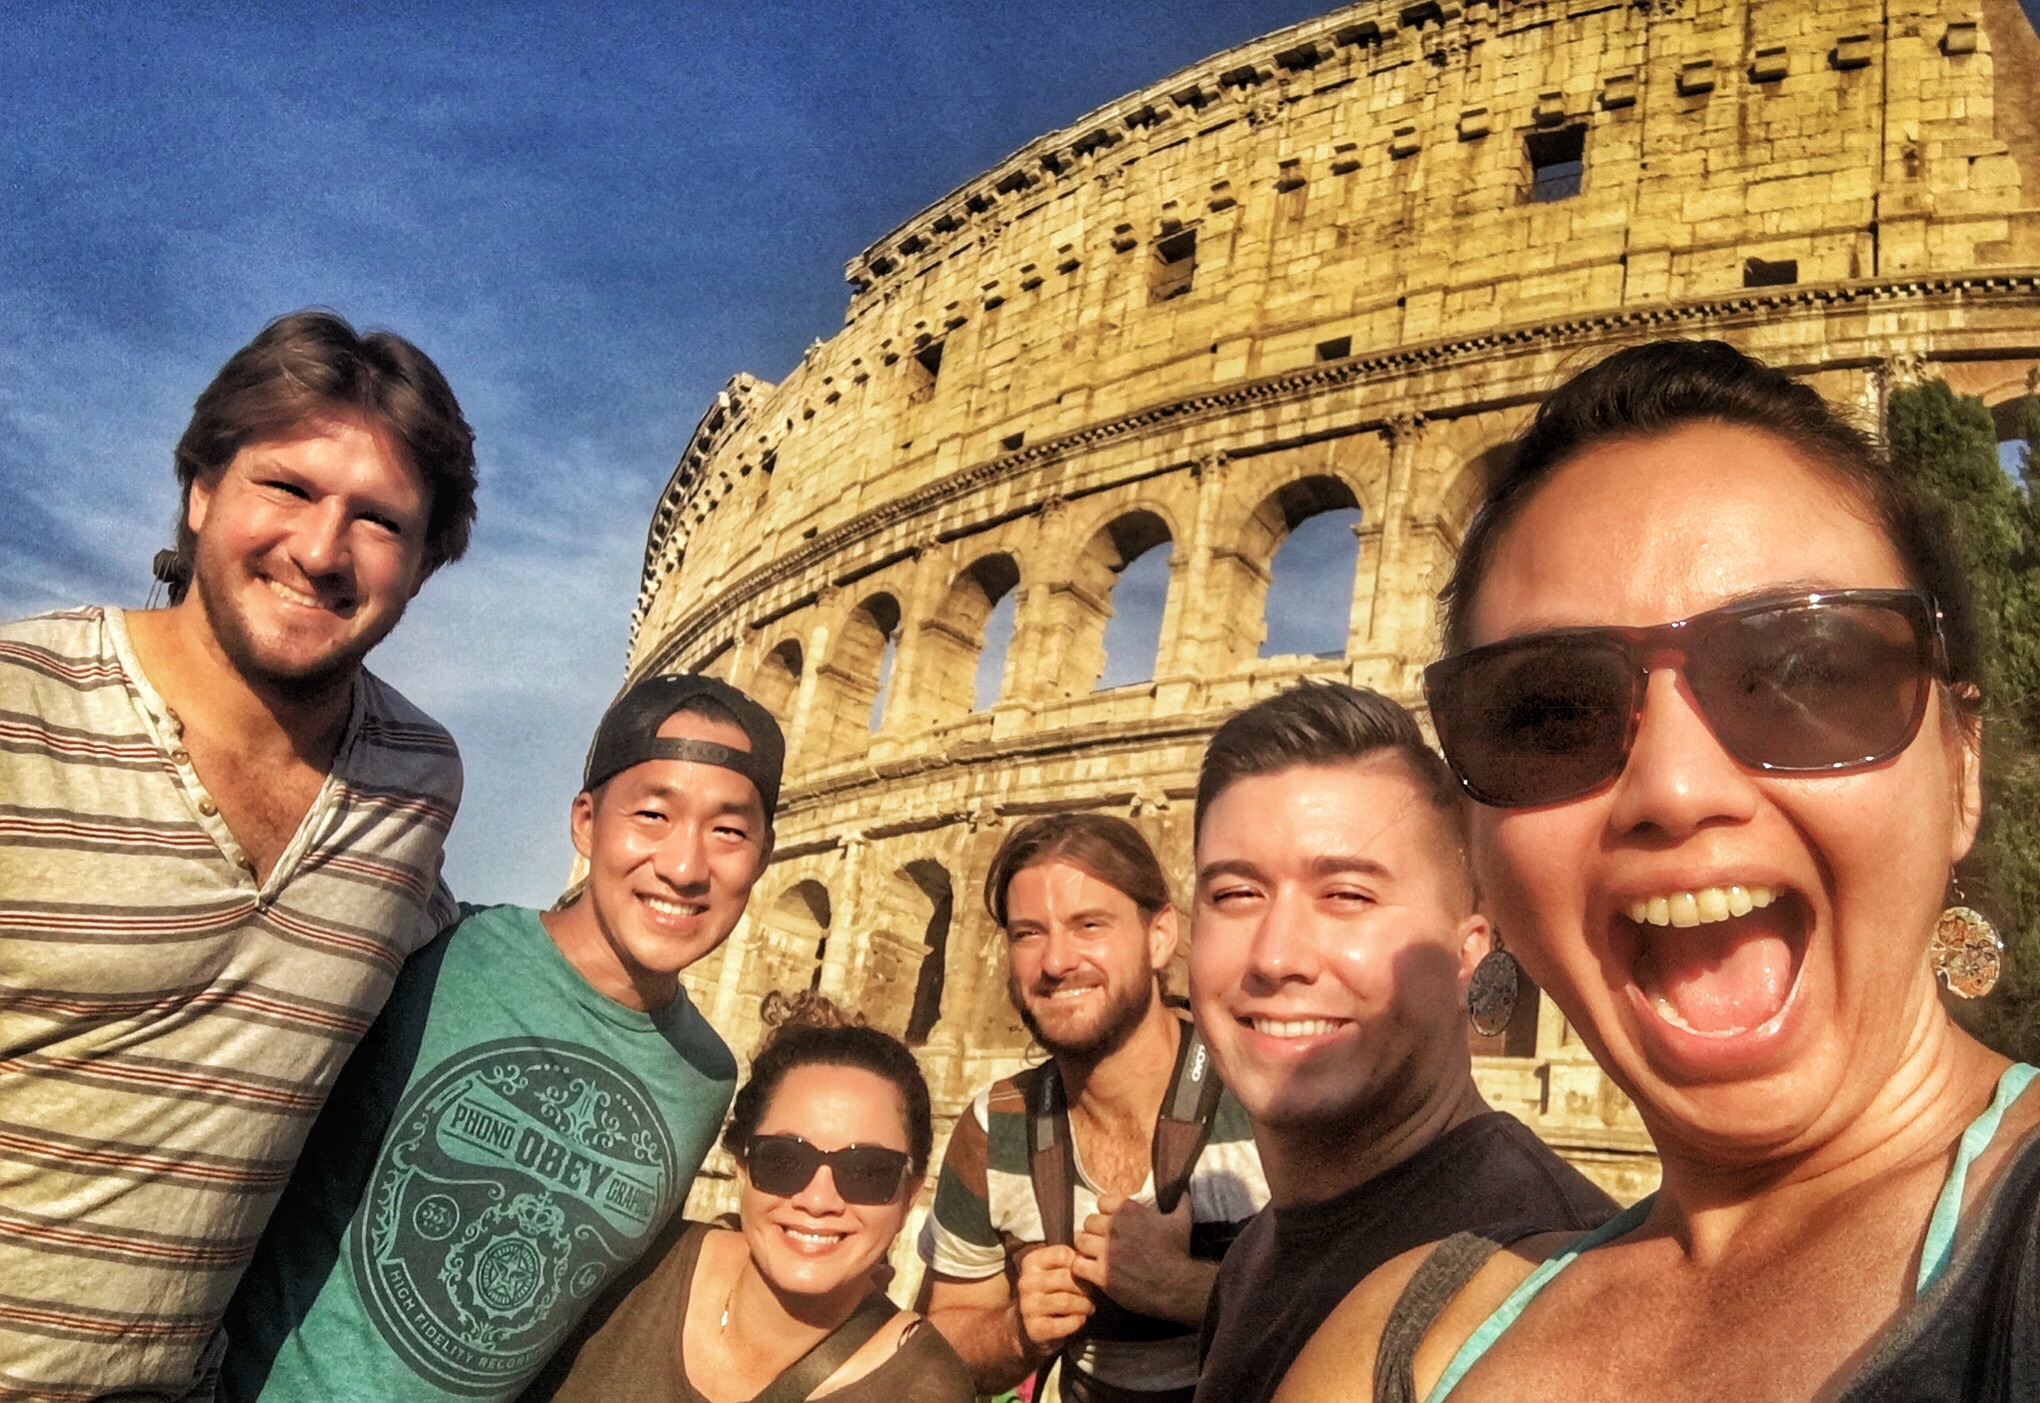 We finally found the Colosseum! Yay! Now we can finally head back home!